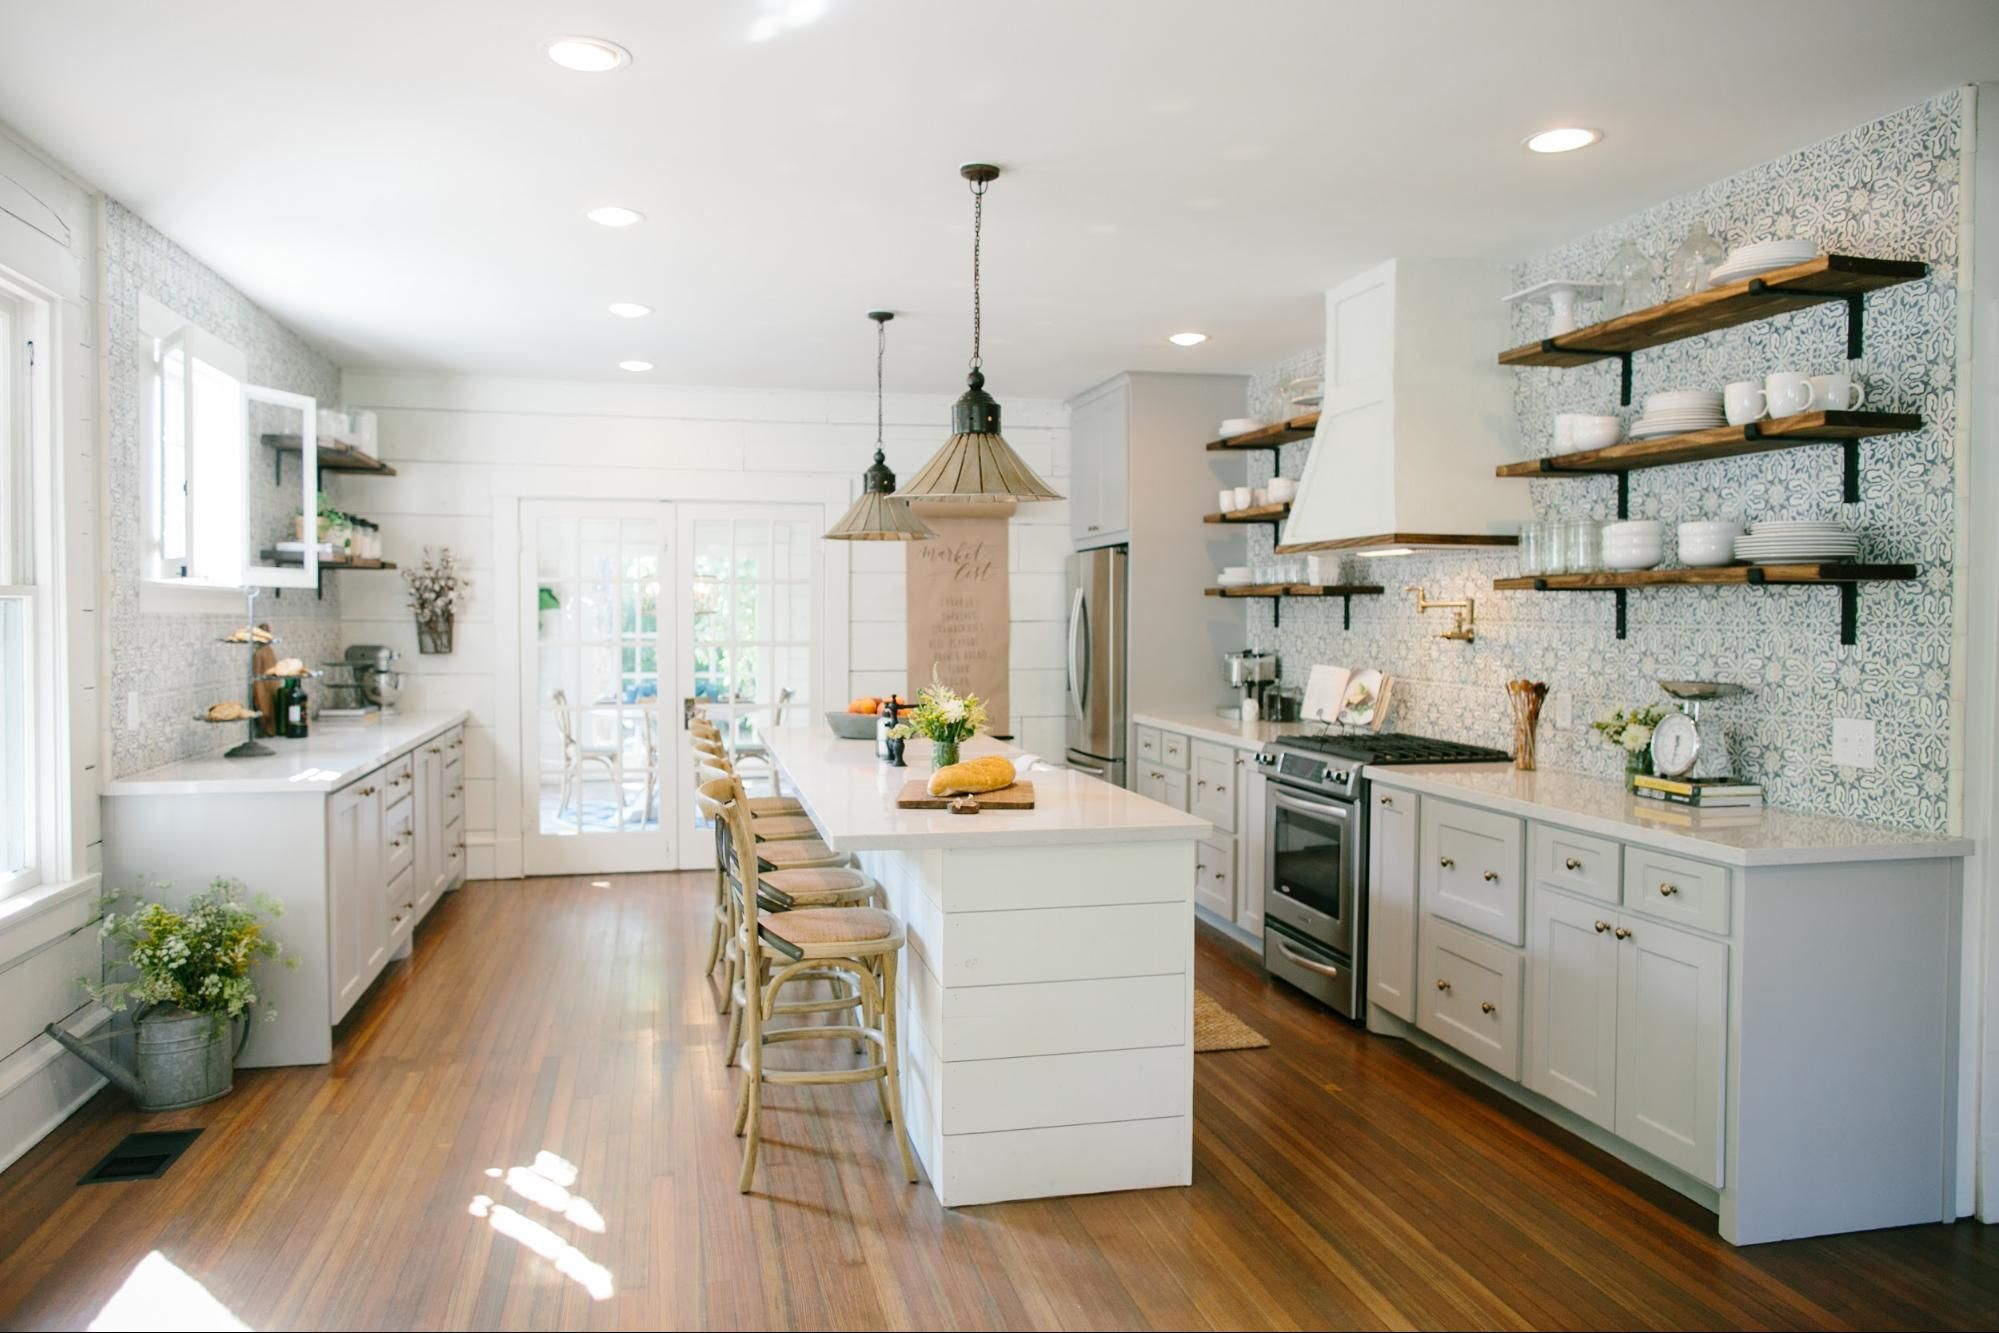 Hgtv fixer upper white kitchens - Kitchens On Fixer Upper 17 Best Images About Blue And White Gray Kitchens On Pinterest